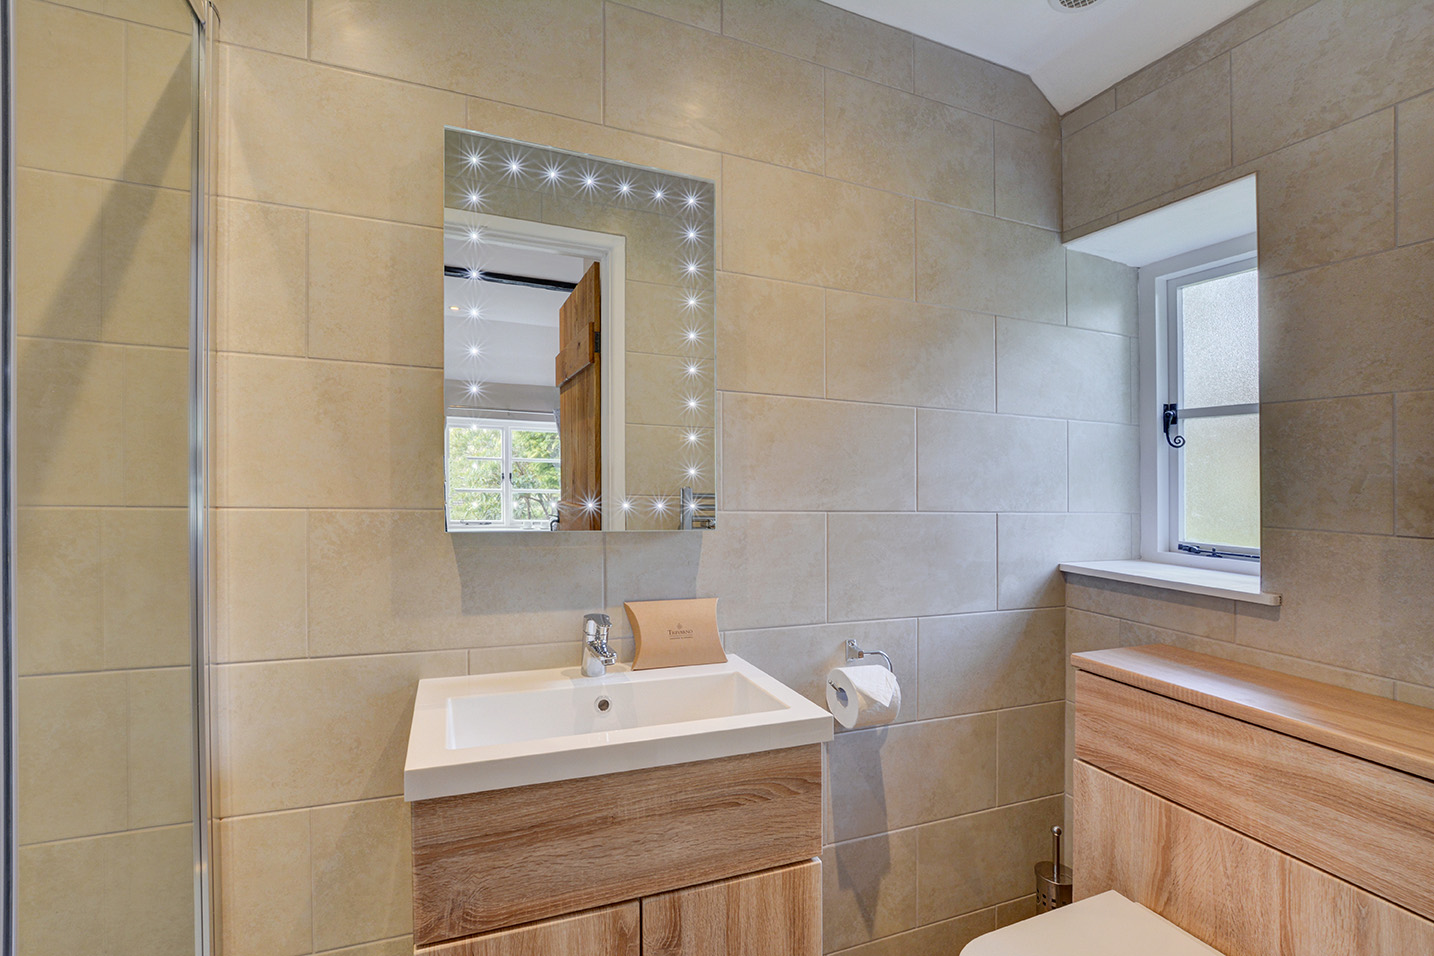 The en-suite shower room of Goosehill luxury self catering converted barn holiday cottage at Penrose Burden in North Cornwall 01.jpg